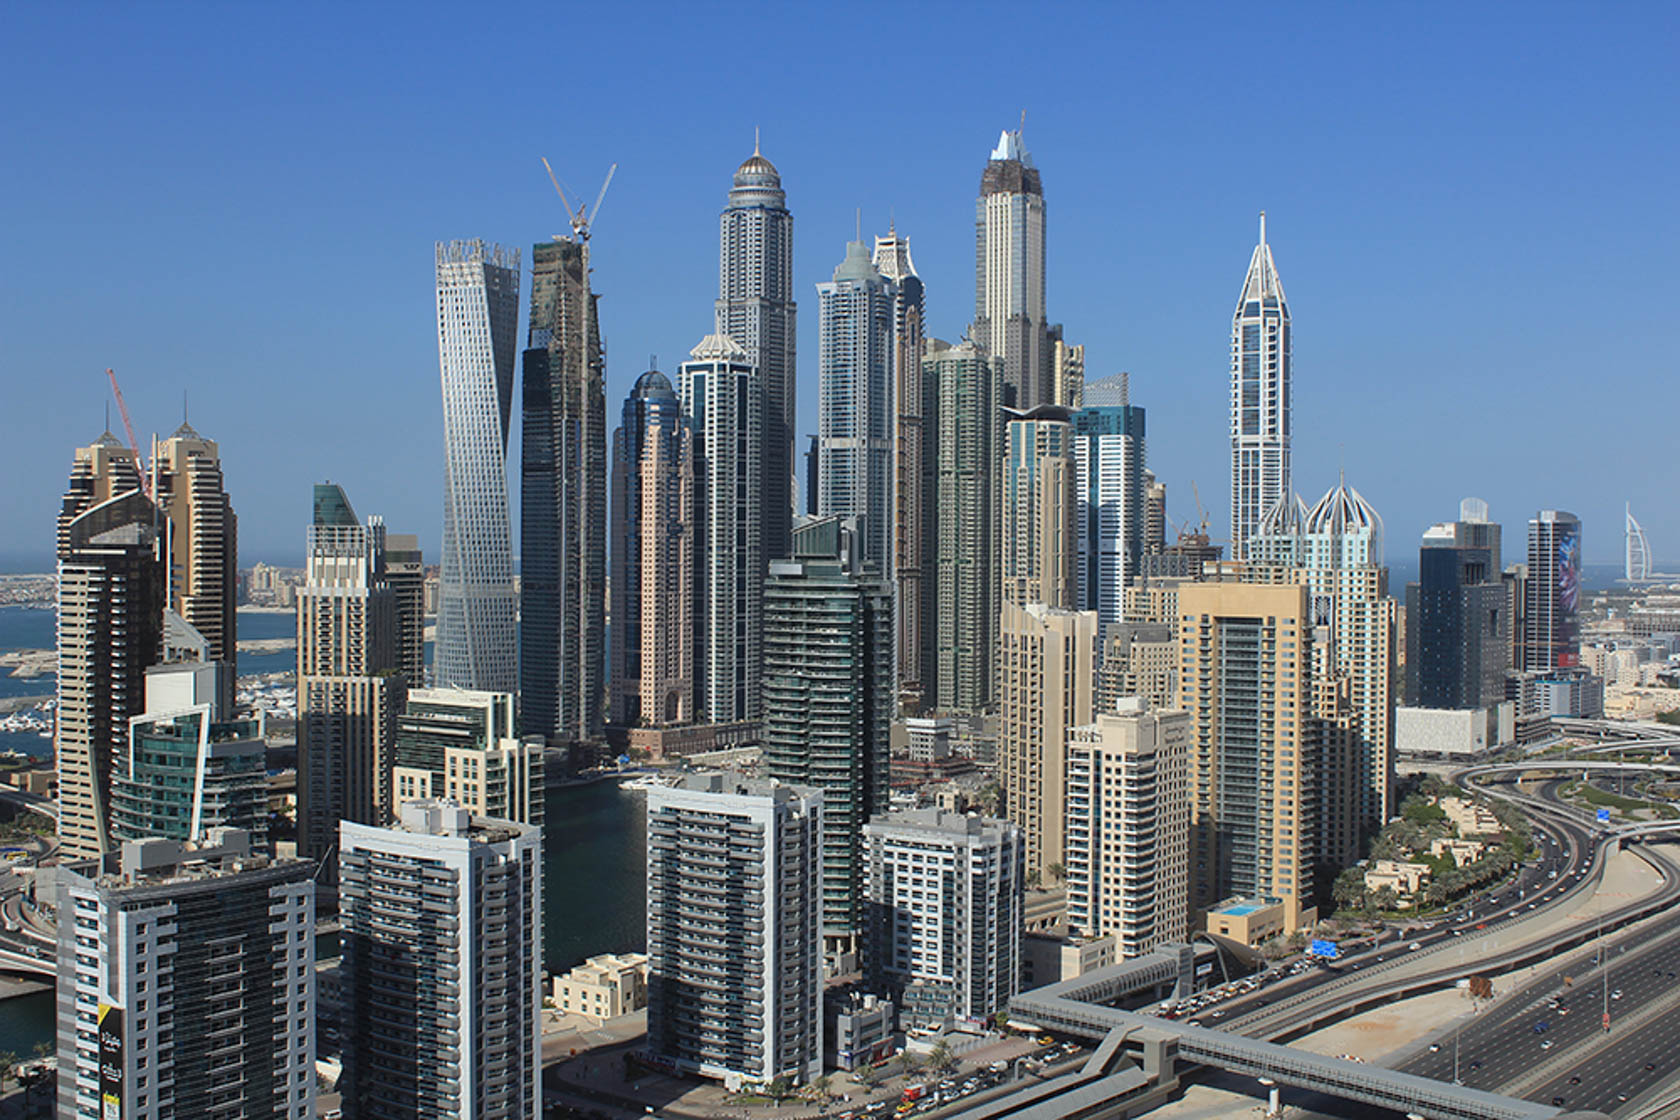 Cityscape during the day taken with Canon EOS 1300D DSLR camera